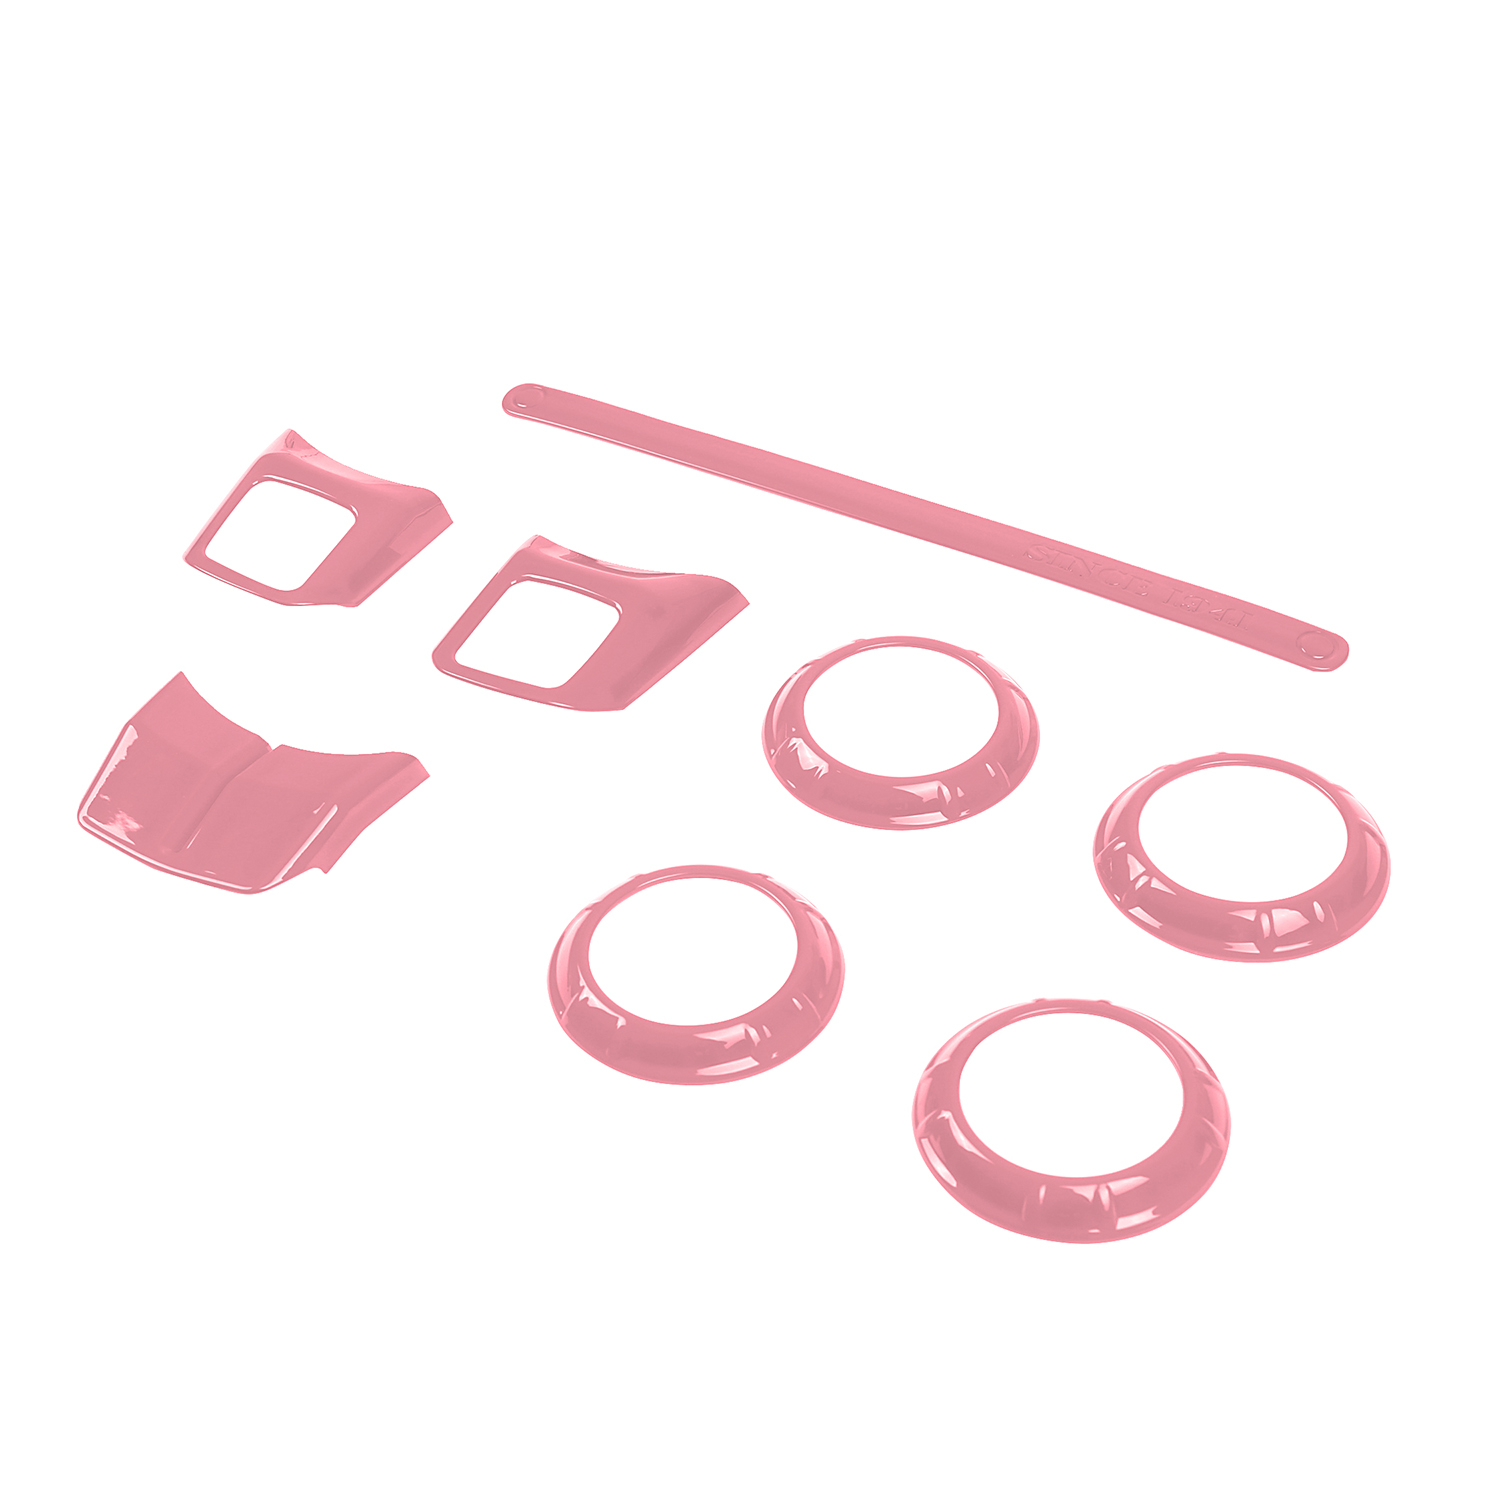 8pcs pink abs air conditioning vent cover trim kit for jeep